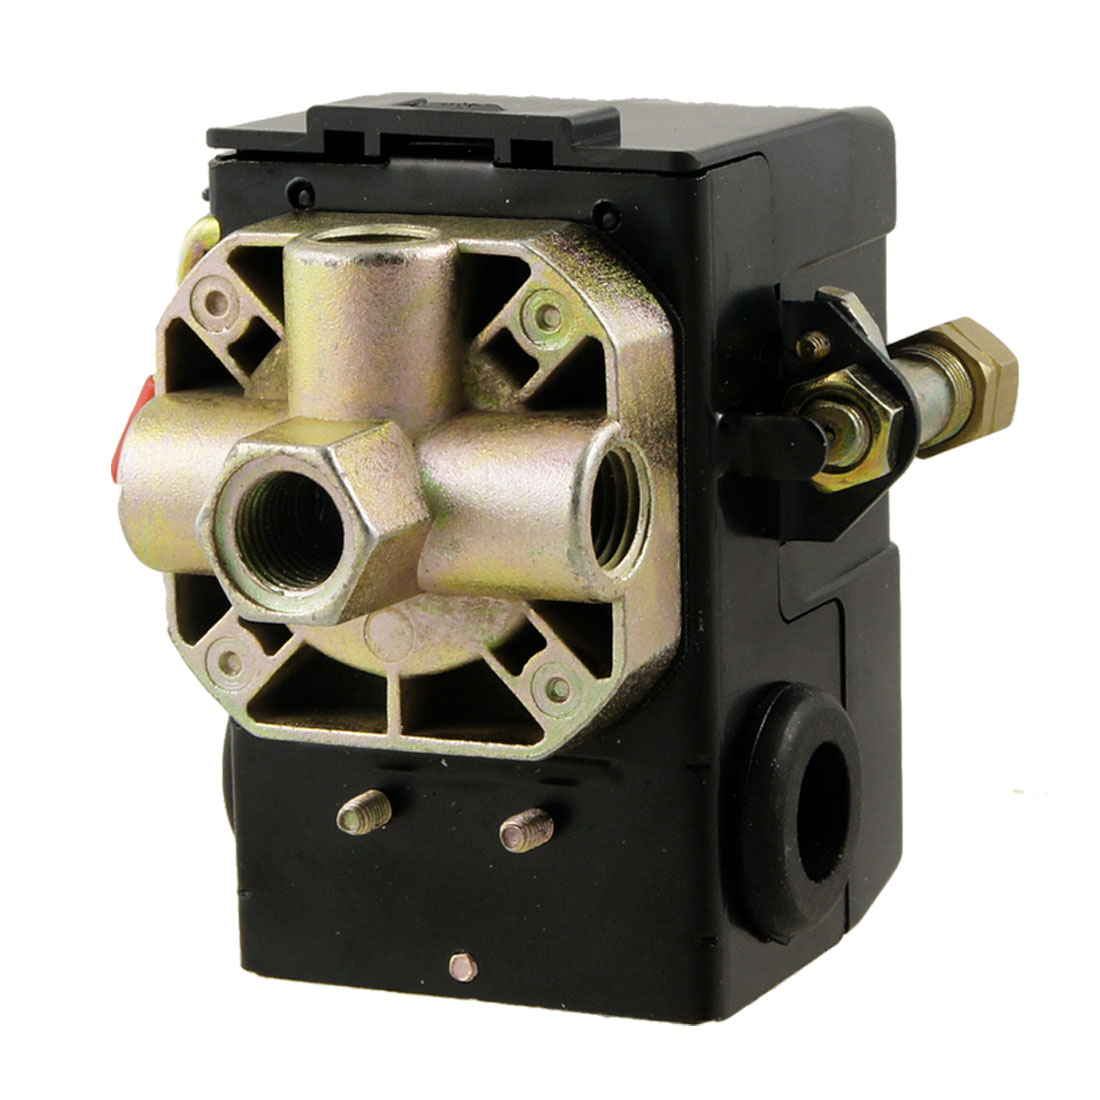 115PSI 1/4 NPT 4-Port Air Compressor Pneumatic Pressure Switch Control Valve